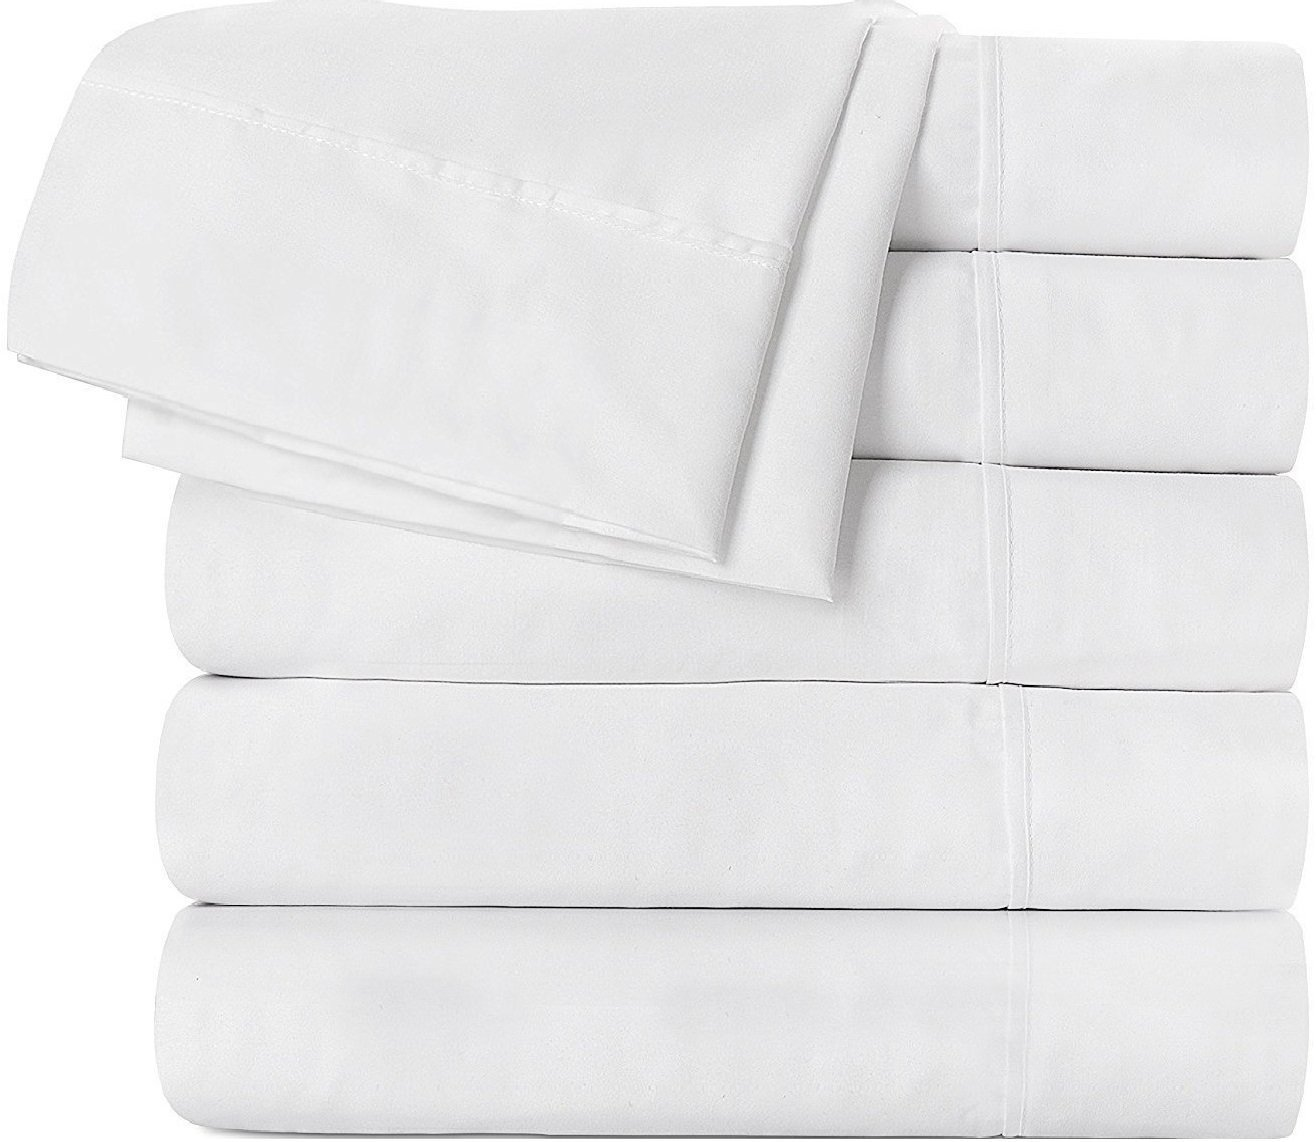 Flat Sheet 6 Pack (Full, White) Brushed Microfiber - Soft, Breathable, Iron Easy, Wrinkle, Fade and Stain Resistant- Hotel Quality by Utopia Bedding FBA_B00XK9CHFO